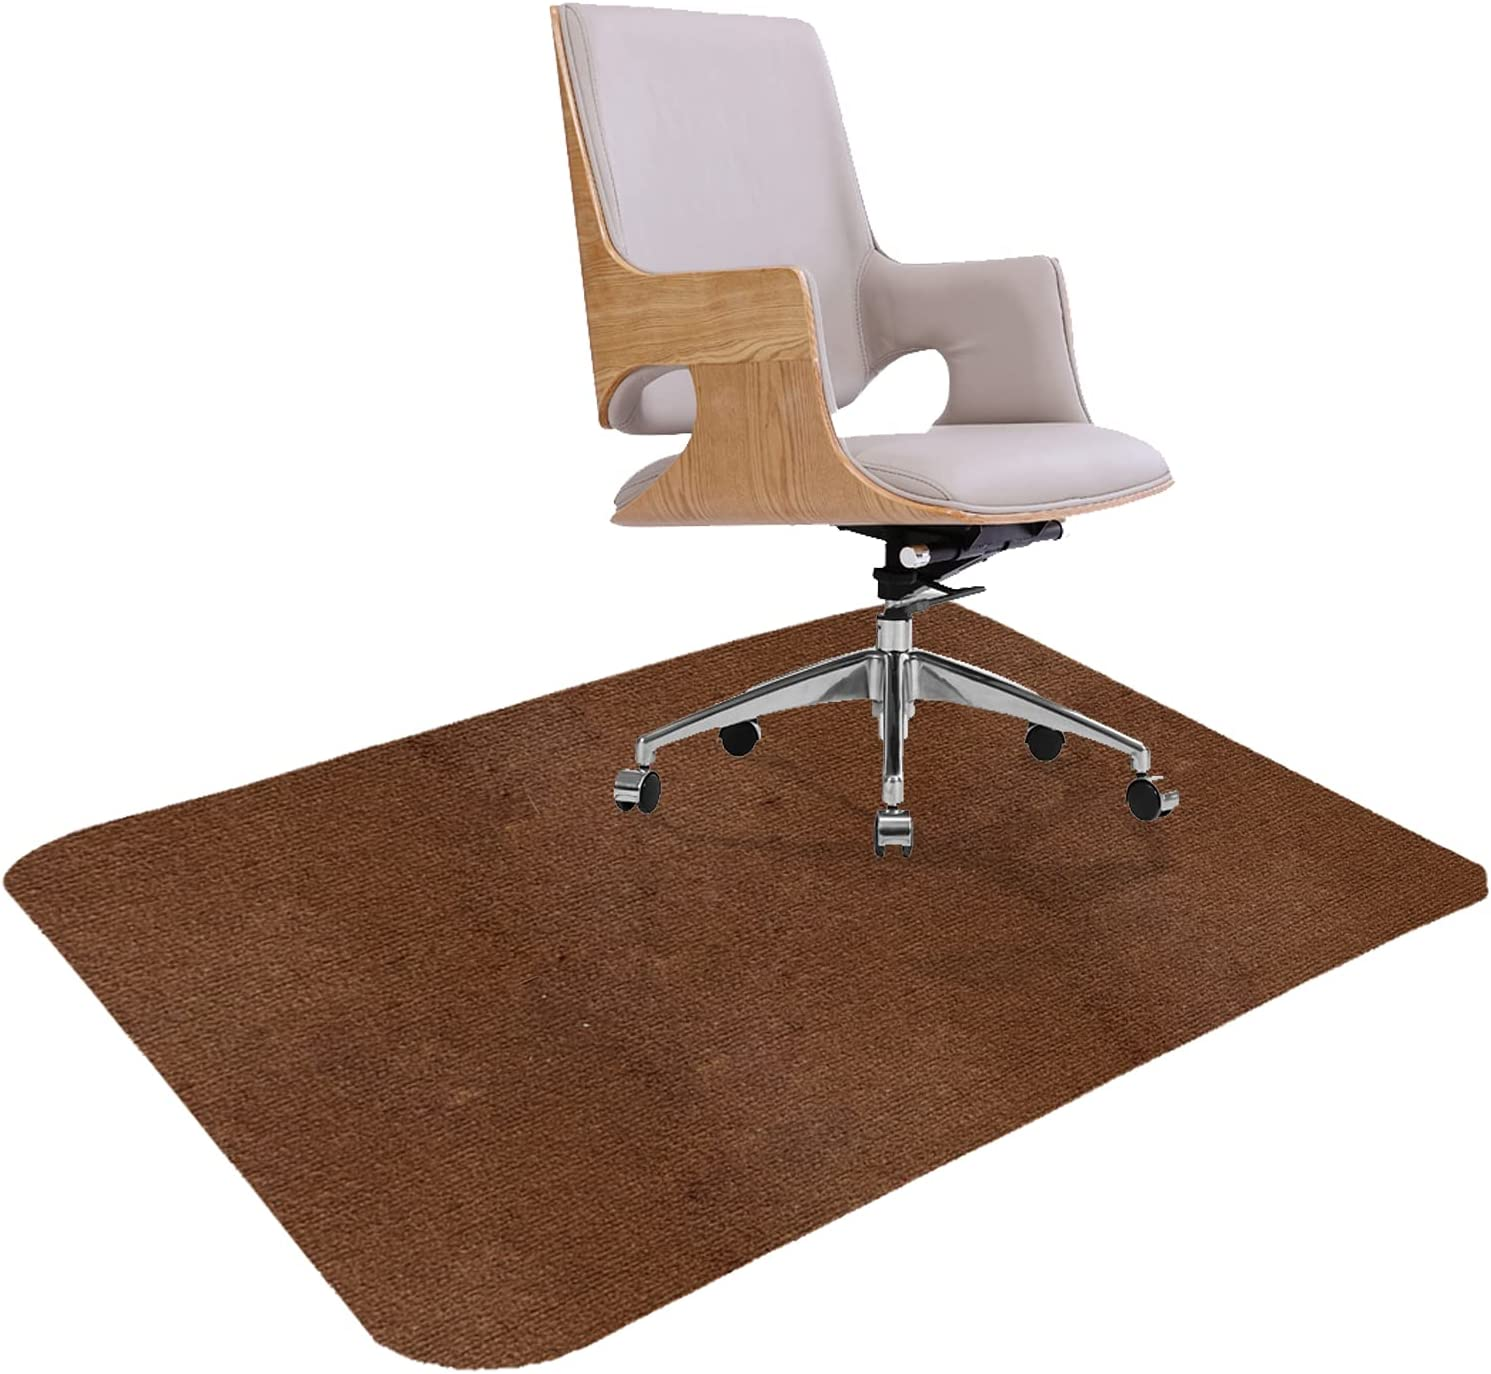 """Office Chair Mat,Chair Mat Premium Office Hard Floor Protector, Desk Chair Mat Floor Protector 1/6"""" Thick 47""""x35"""" for Hard Floor Protection, Anti-Slip, Floor Mat for Porch, Study,Office (Brown)"""